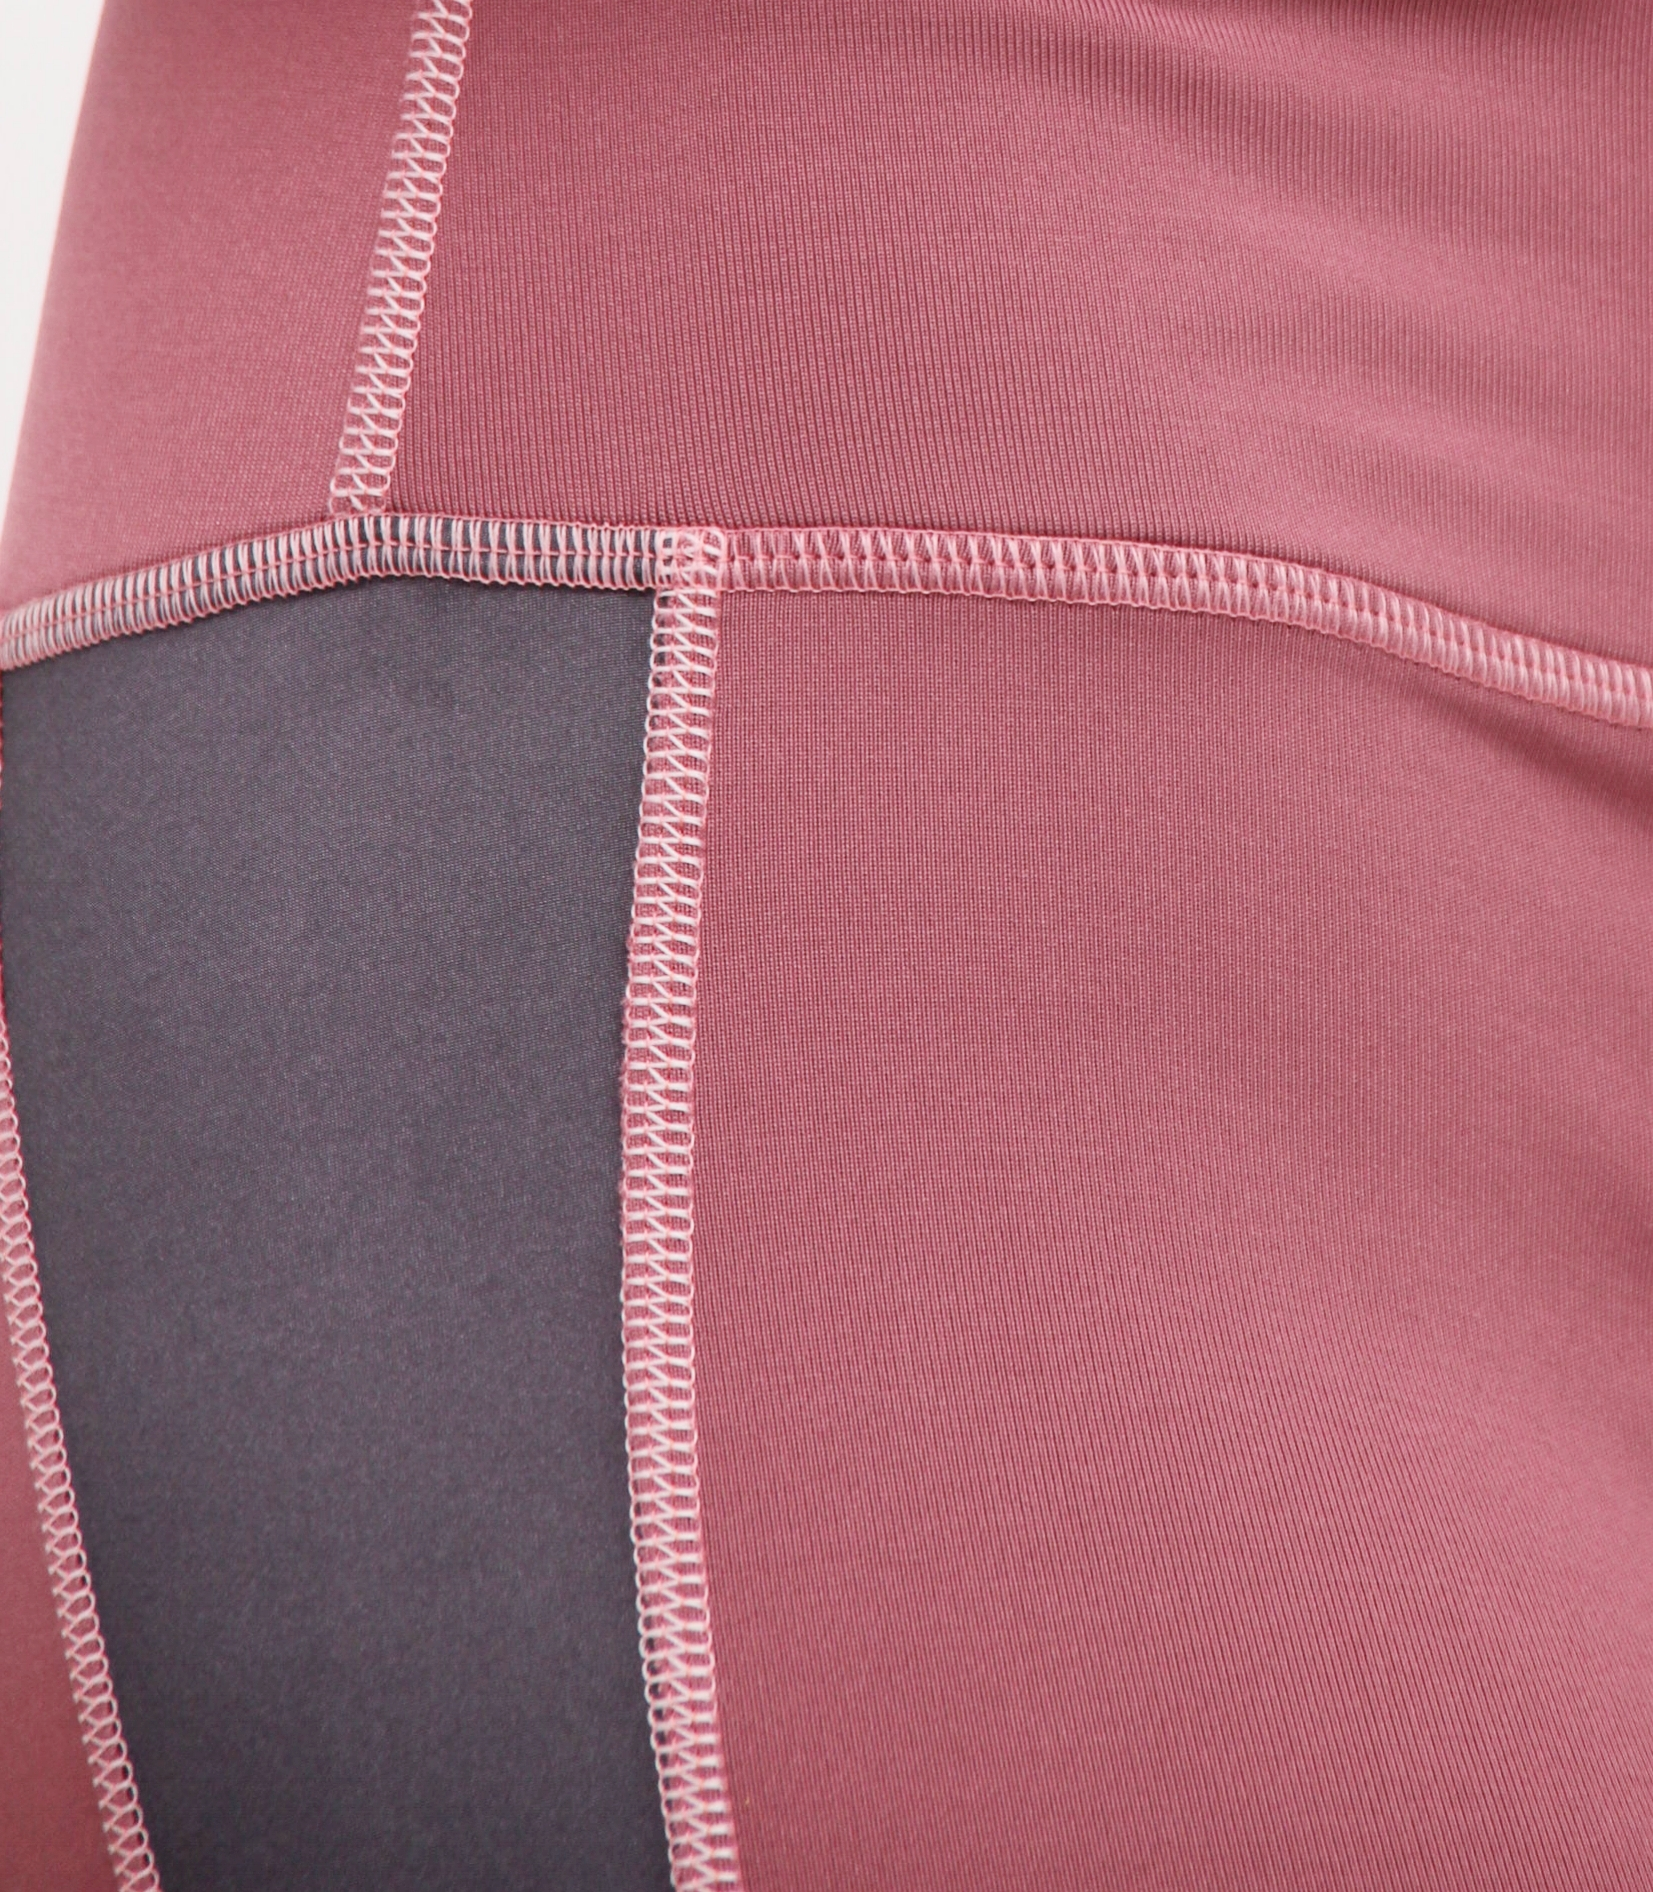 Uber-soft - A modern combination of dusty pink and Space Grey Lycra-blend material, this high moisture wicking and stretchable material is soooooo soft it'll glide over your skin like an intimate caress.